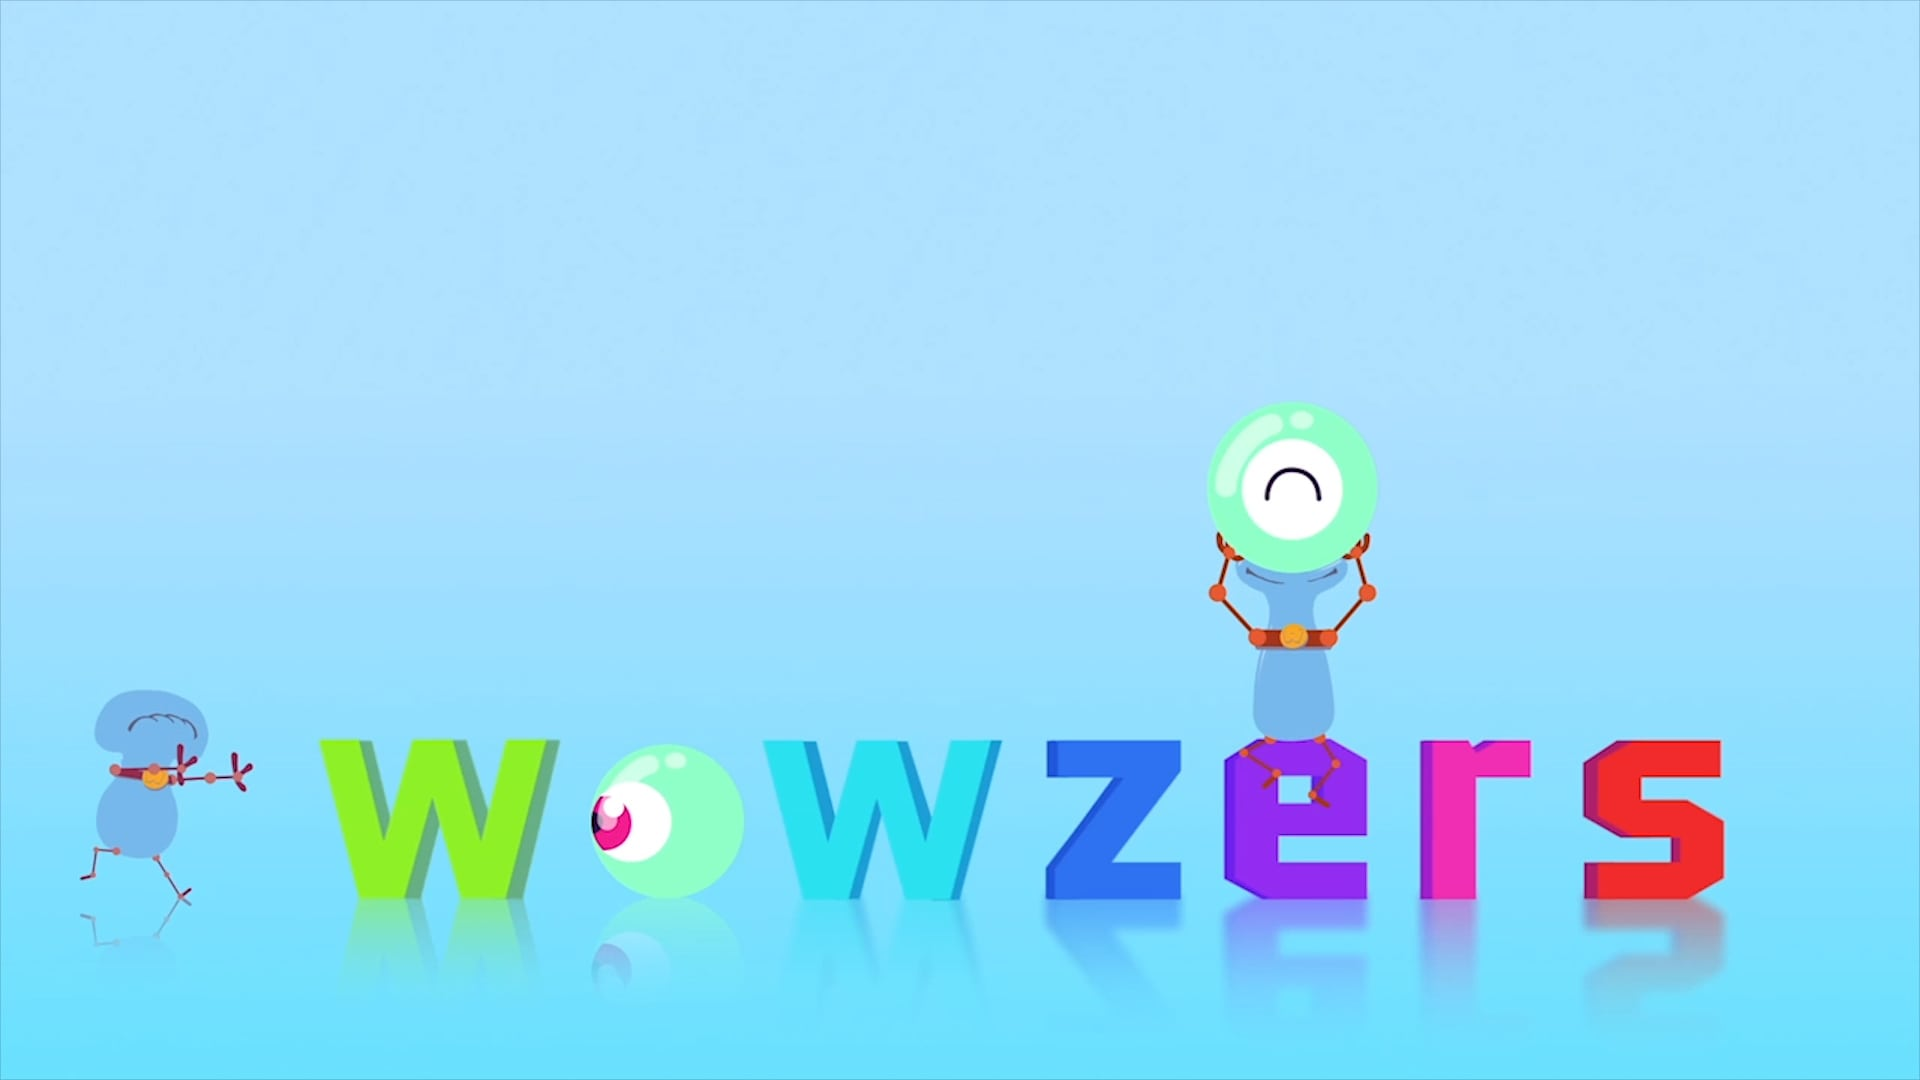 animated character videos for kids - wowzers alien image